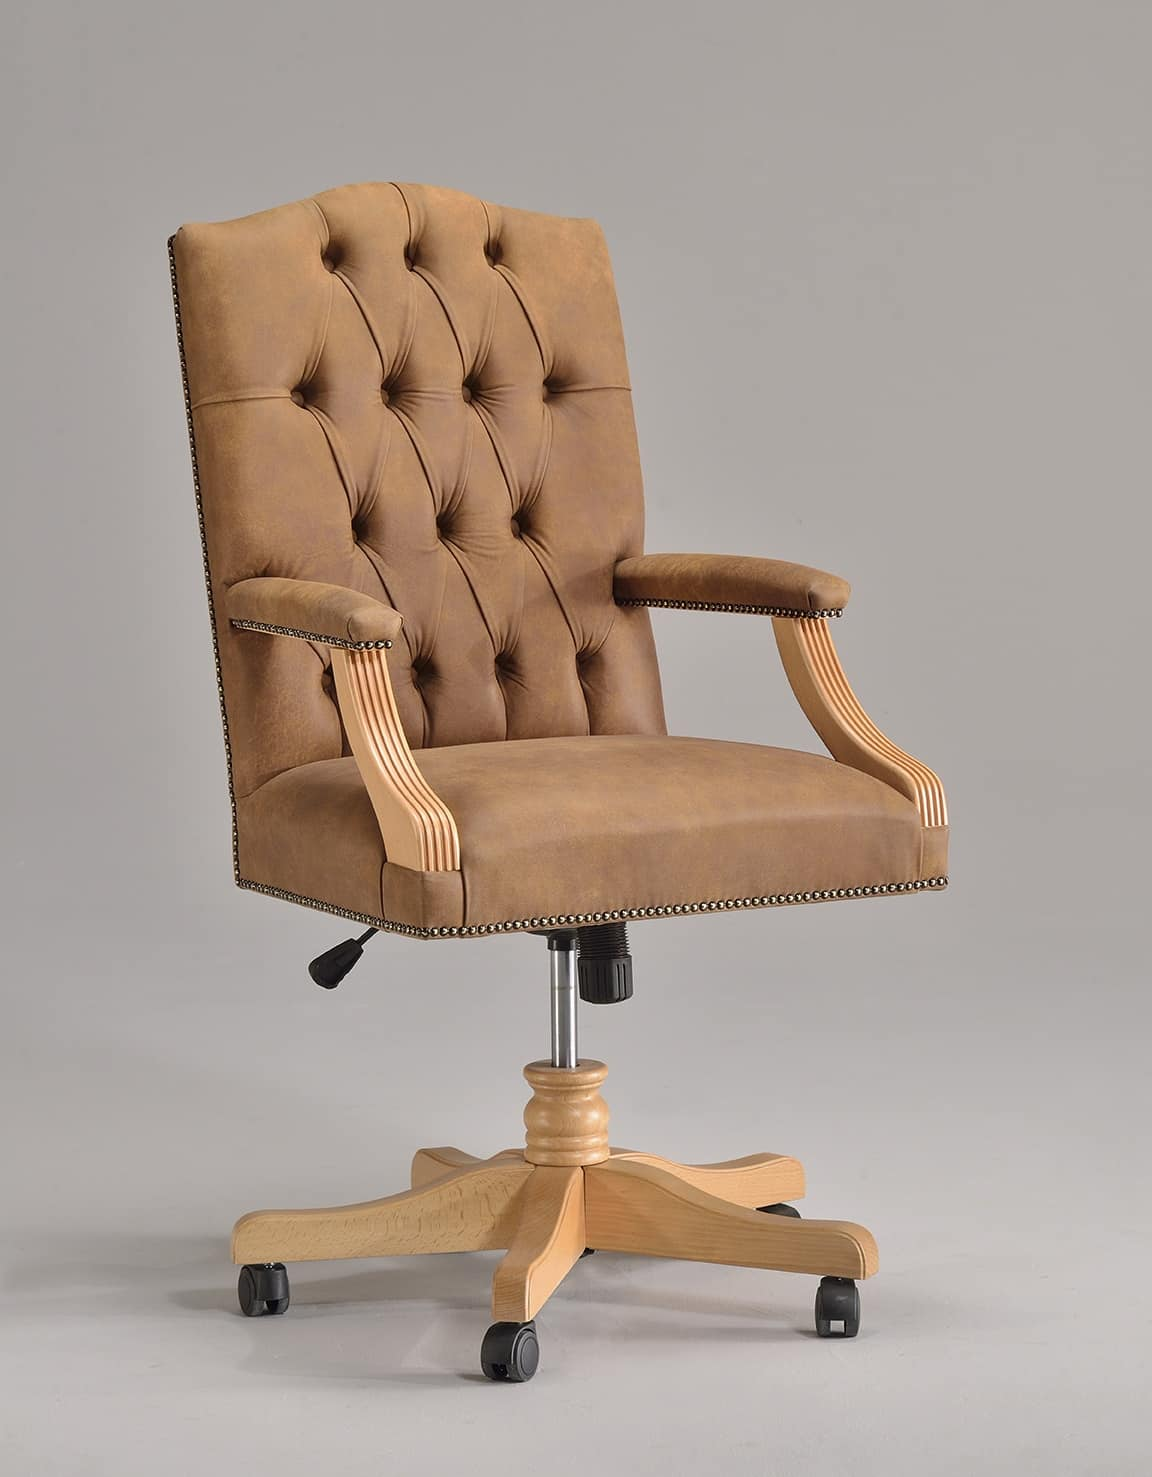 ANTU' office 8222A, Swiveling chair on castors, for classic style offices